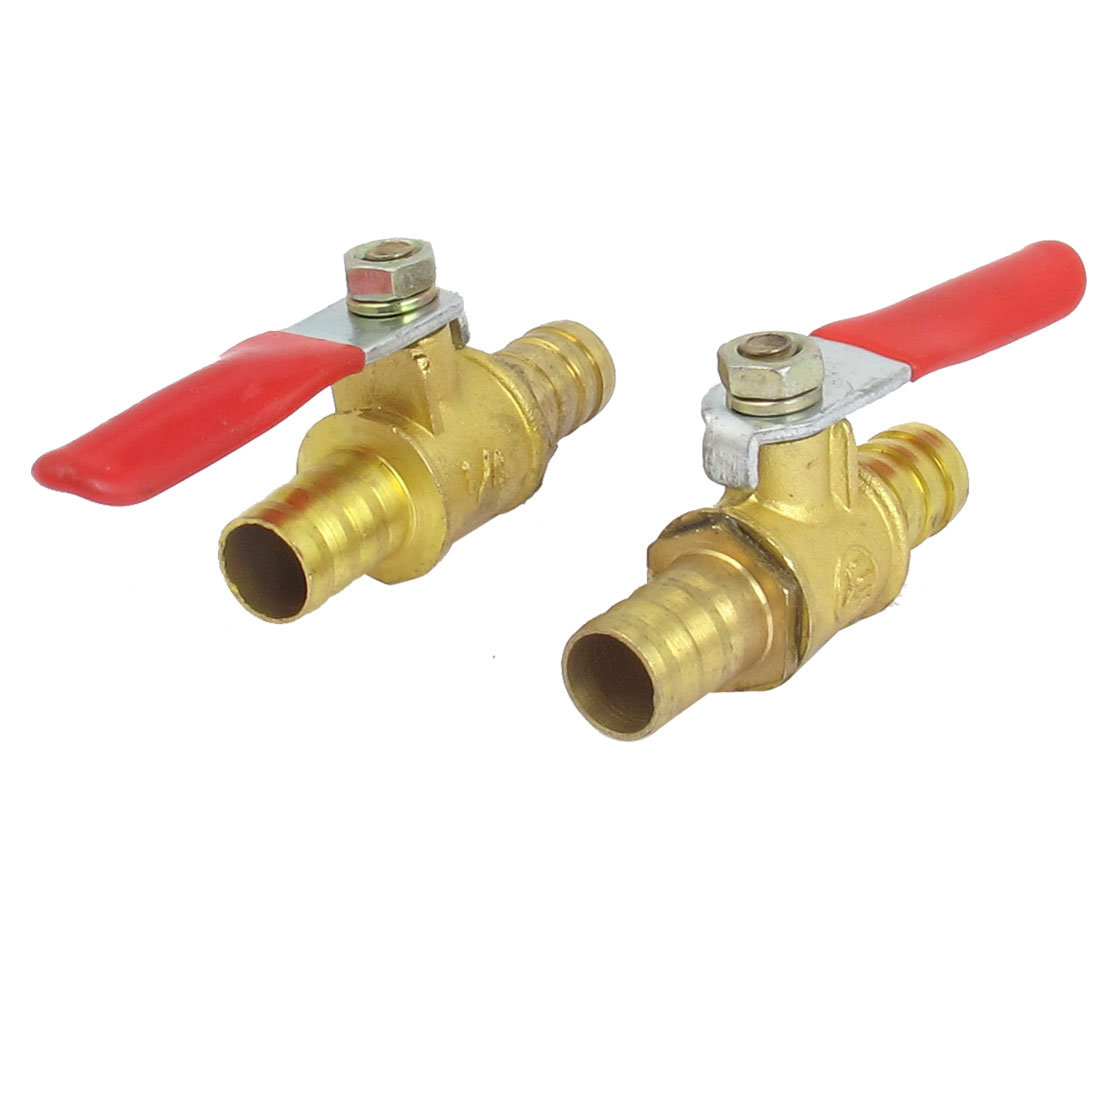 10mm Inner Dia Dual Hose Tail Red Lever Handle Brass Gas Ball Valve 2pcs